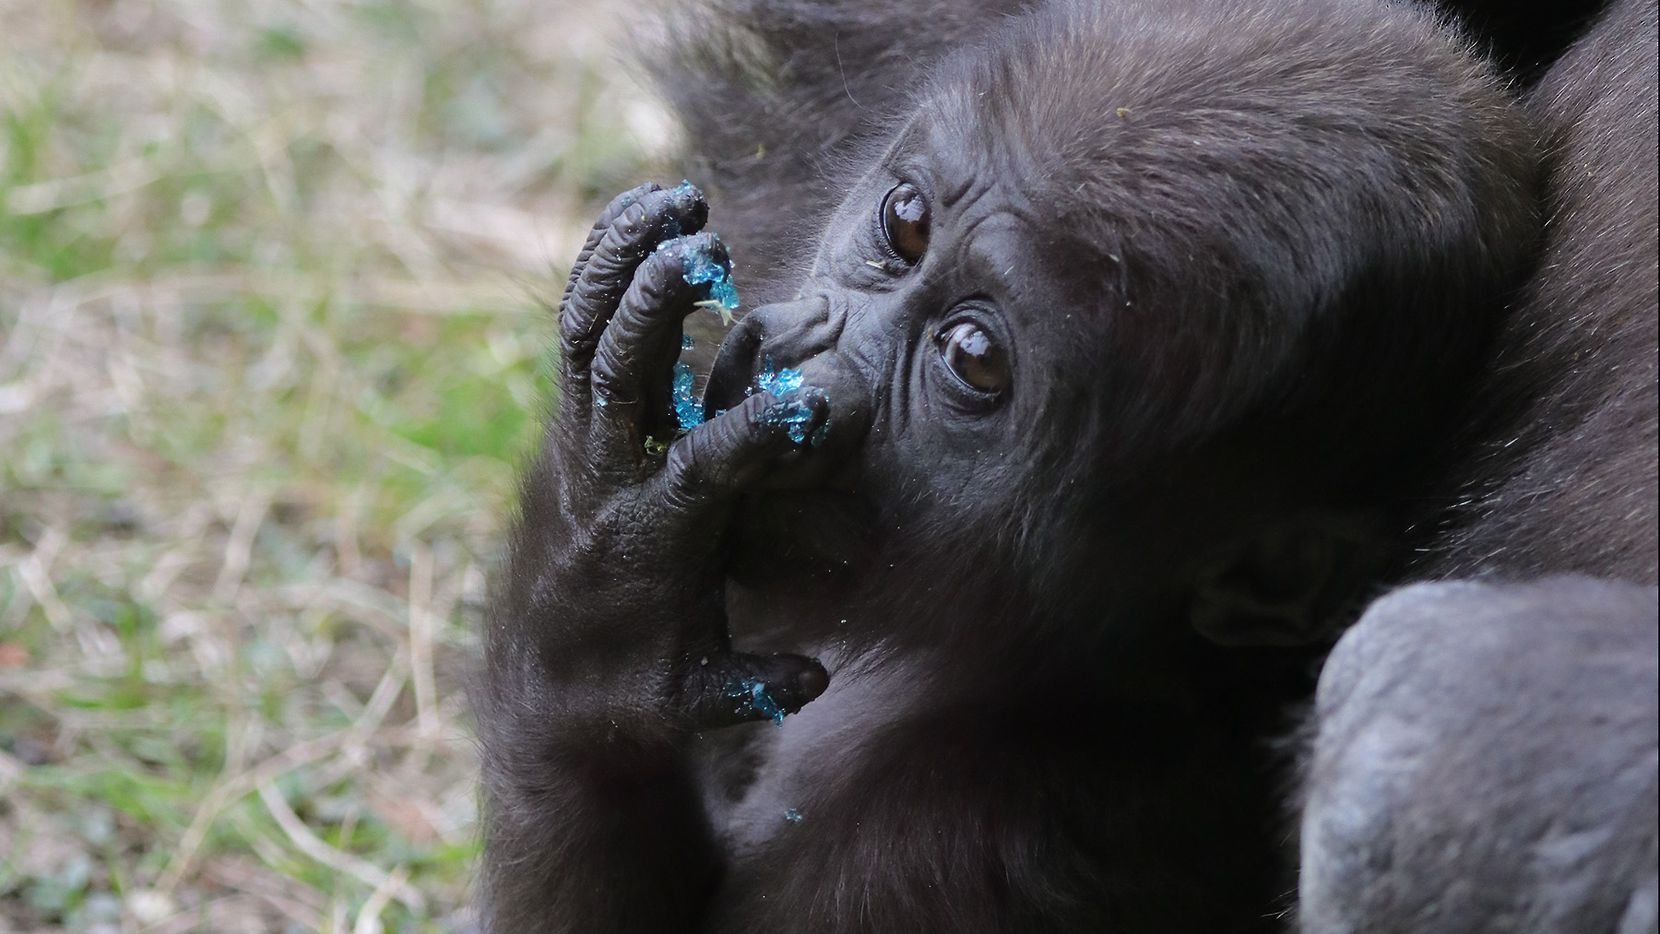 The Dallas Zoo's 7-month-old baby gorilla Saambili on Thursday, Jan. 31, 2019. The gorilla troop attempted to pick a Super Bowl winner by choosing between themed treats.